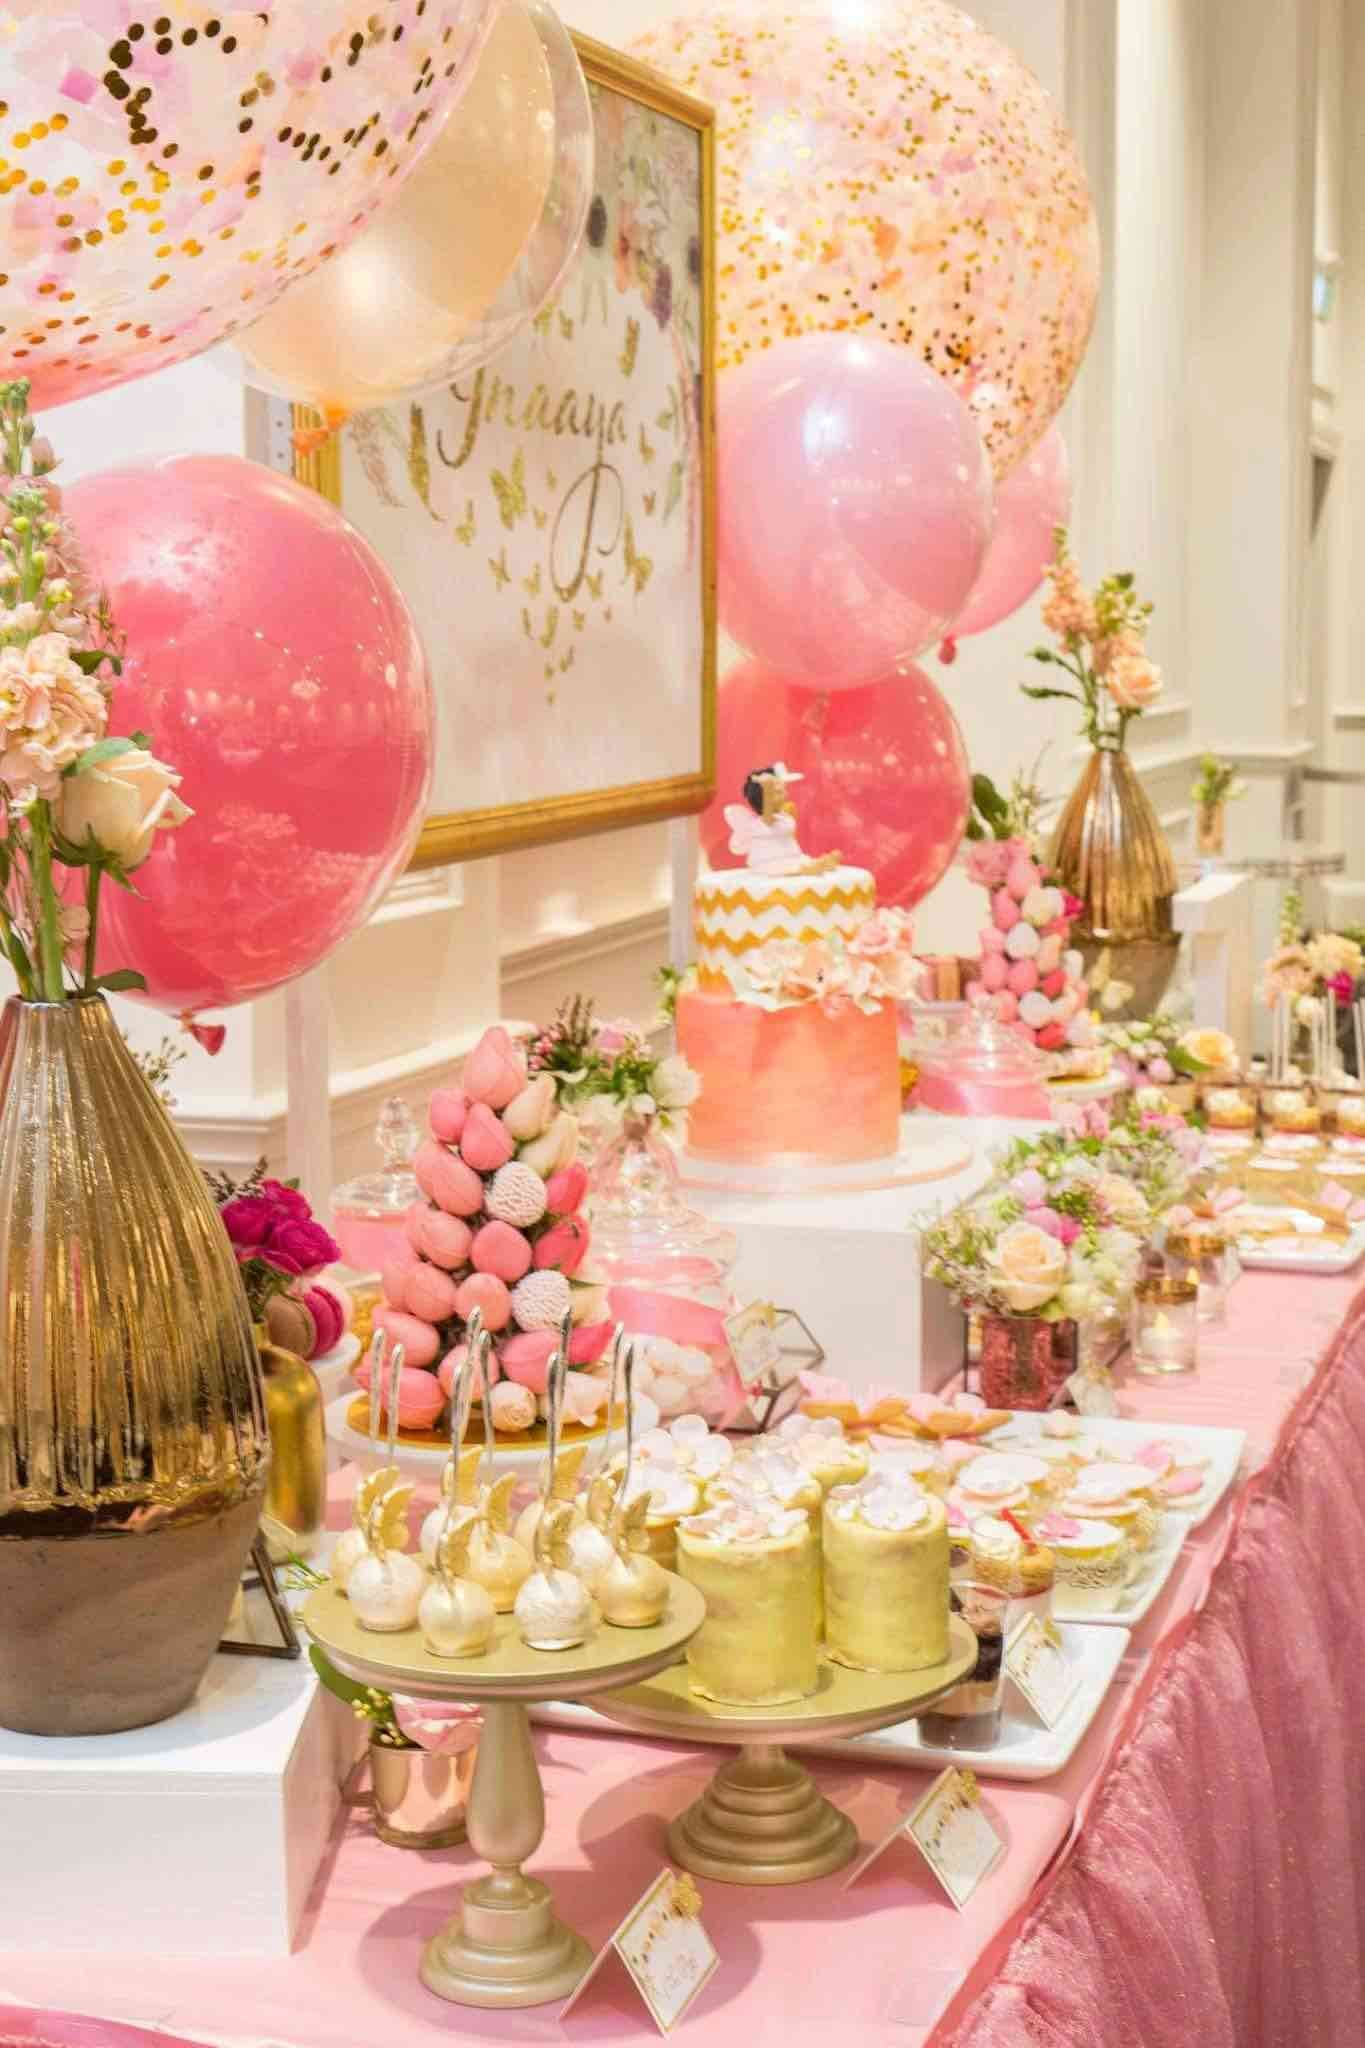 Bridal Shower 101 Everything You Need to Know  Bridal Shower Decor Ideas  Bridal shower